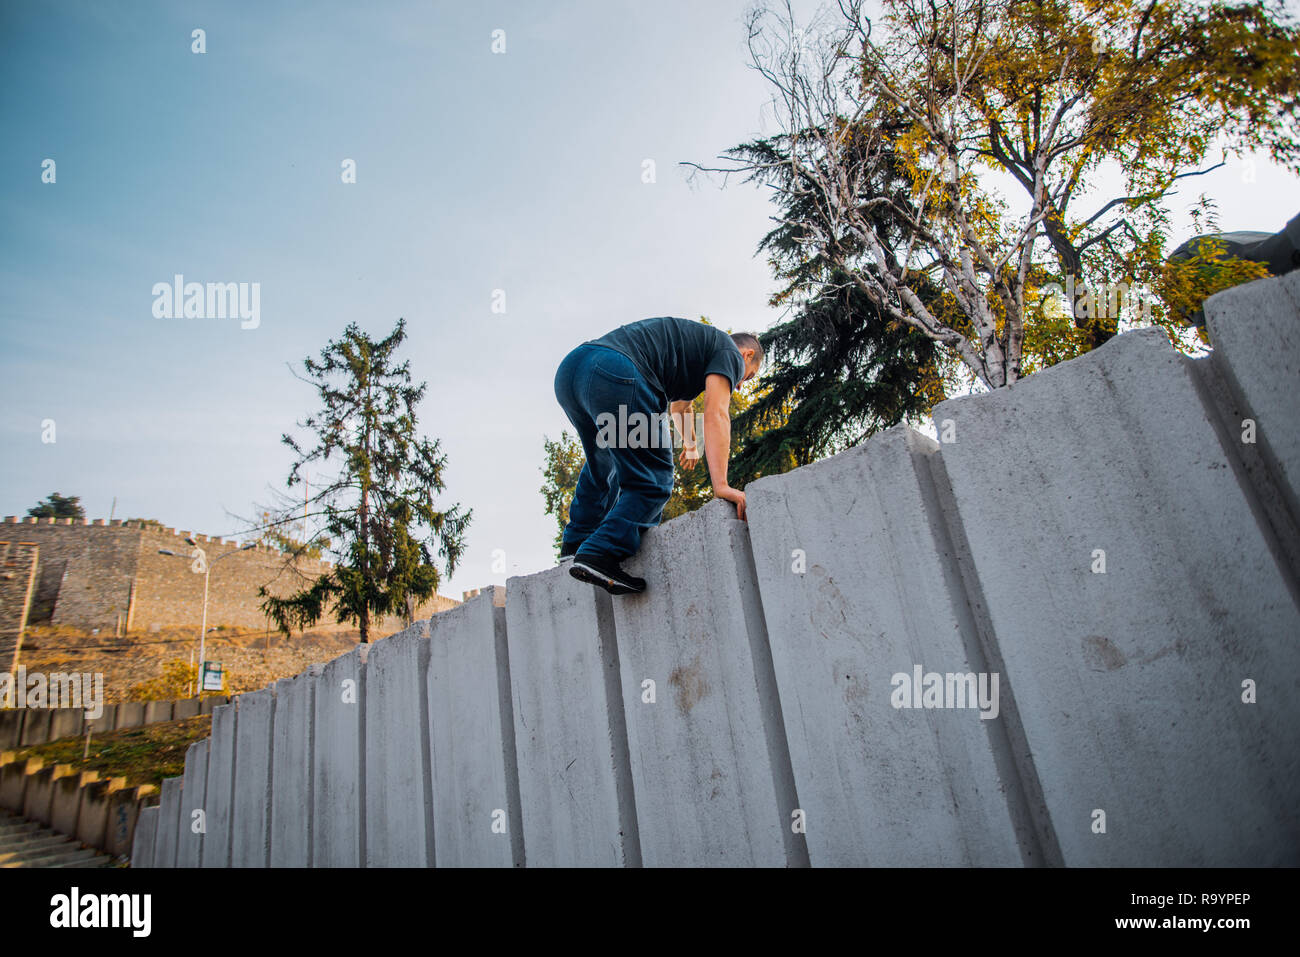 Traceur man hiking on the concrete obstacle while exercising parkour - Stock Image